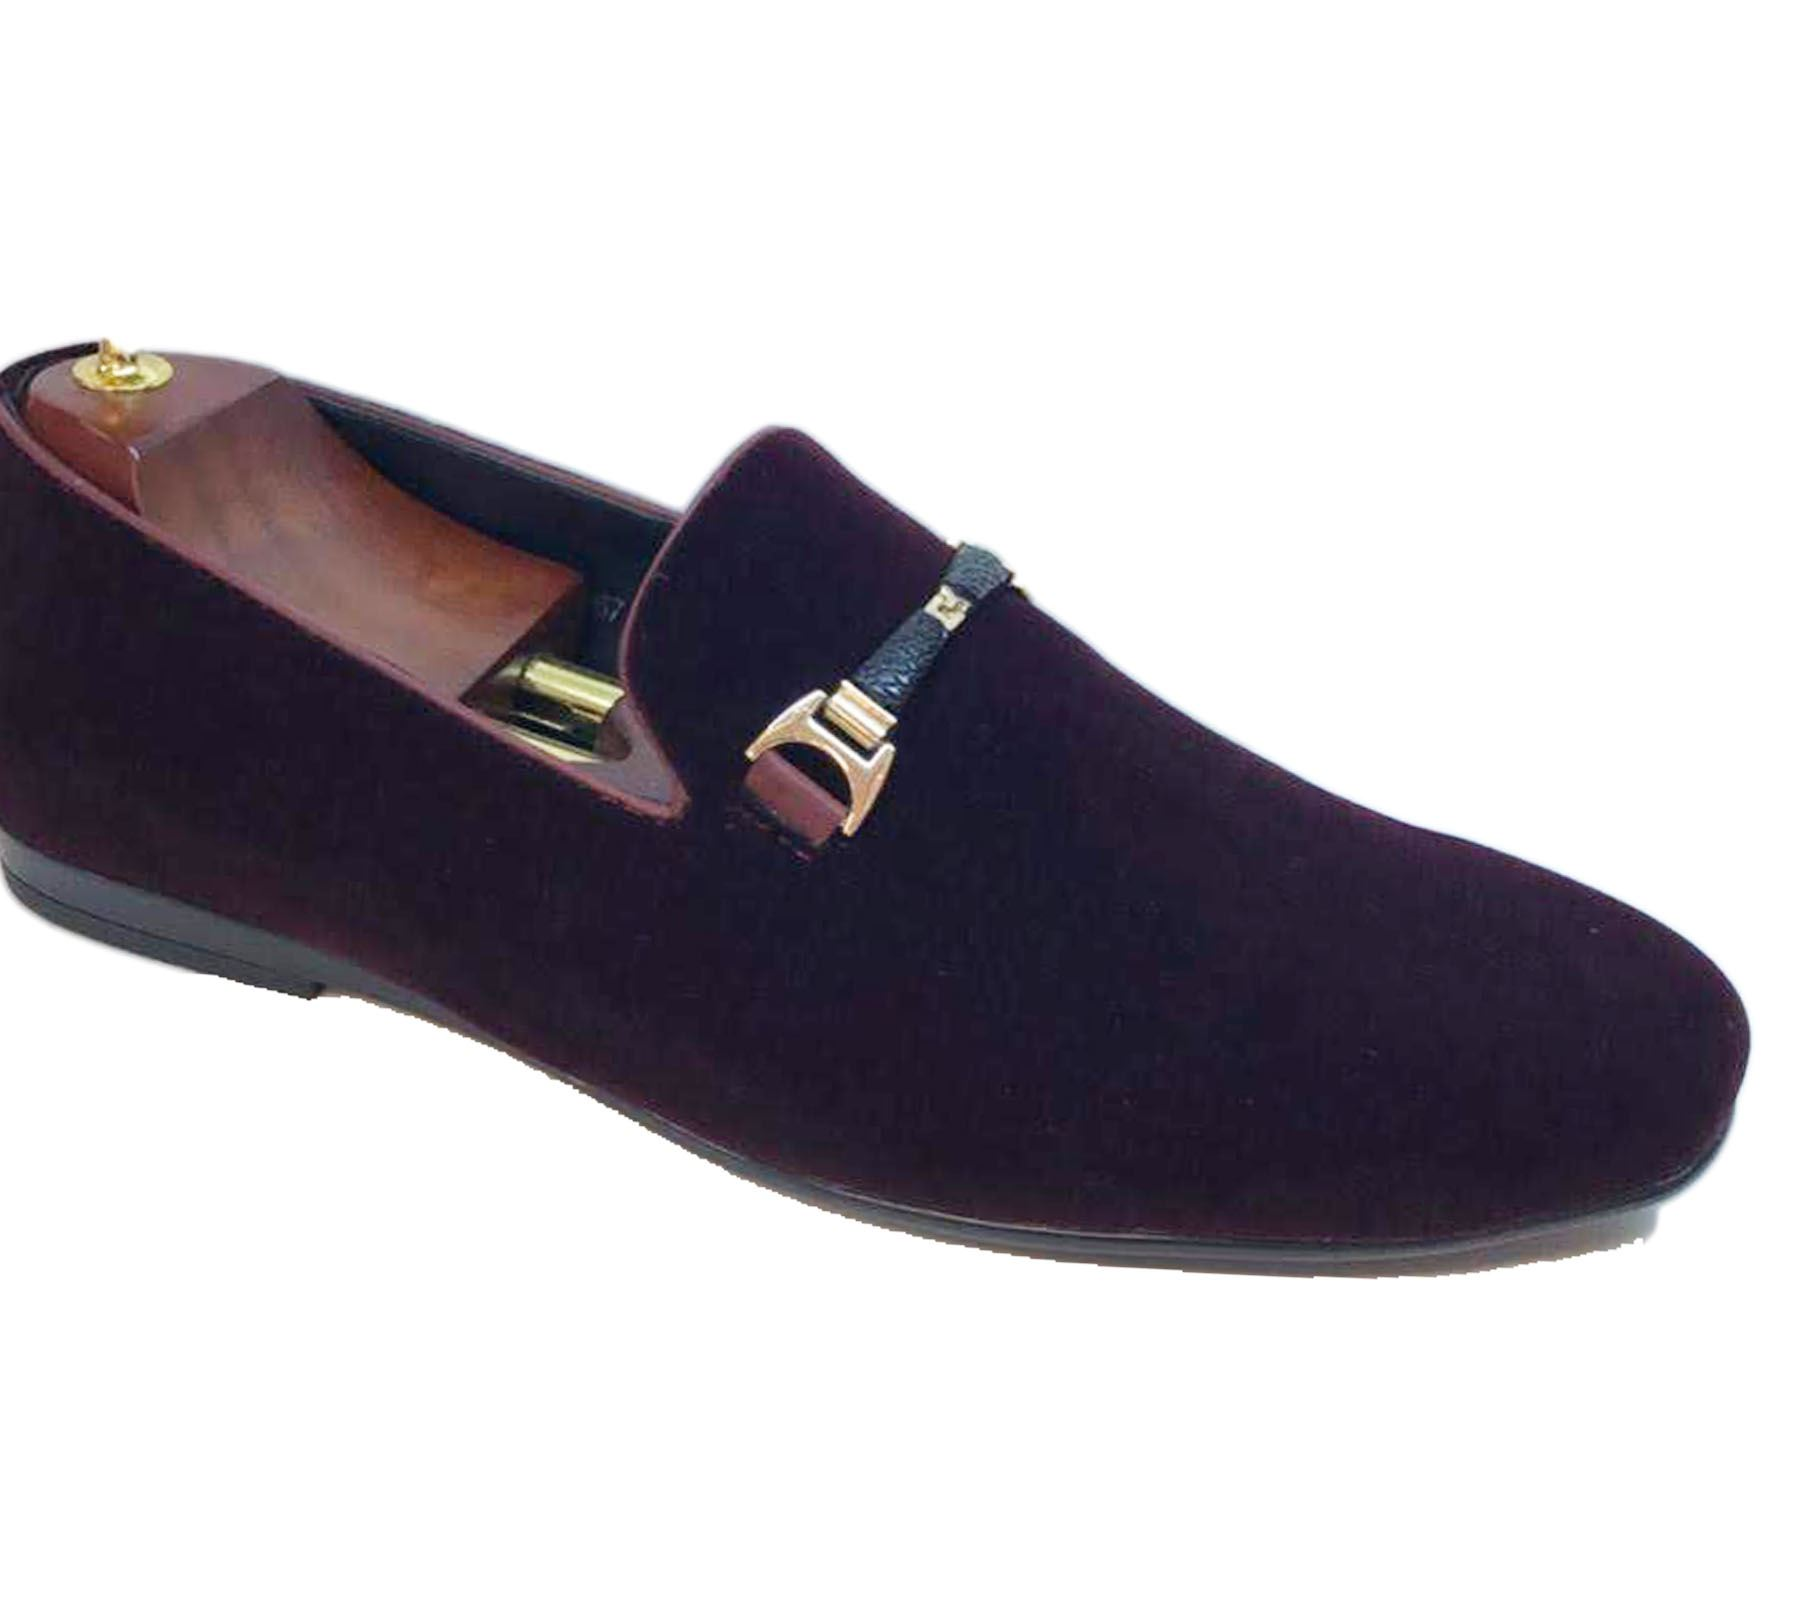 Mens-Loafers-Mocassin-Boat-Deck-Shoes-Flat-Slip-On-Driving-Casual-Smart-Pumps thumbnail 25